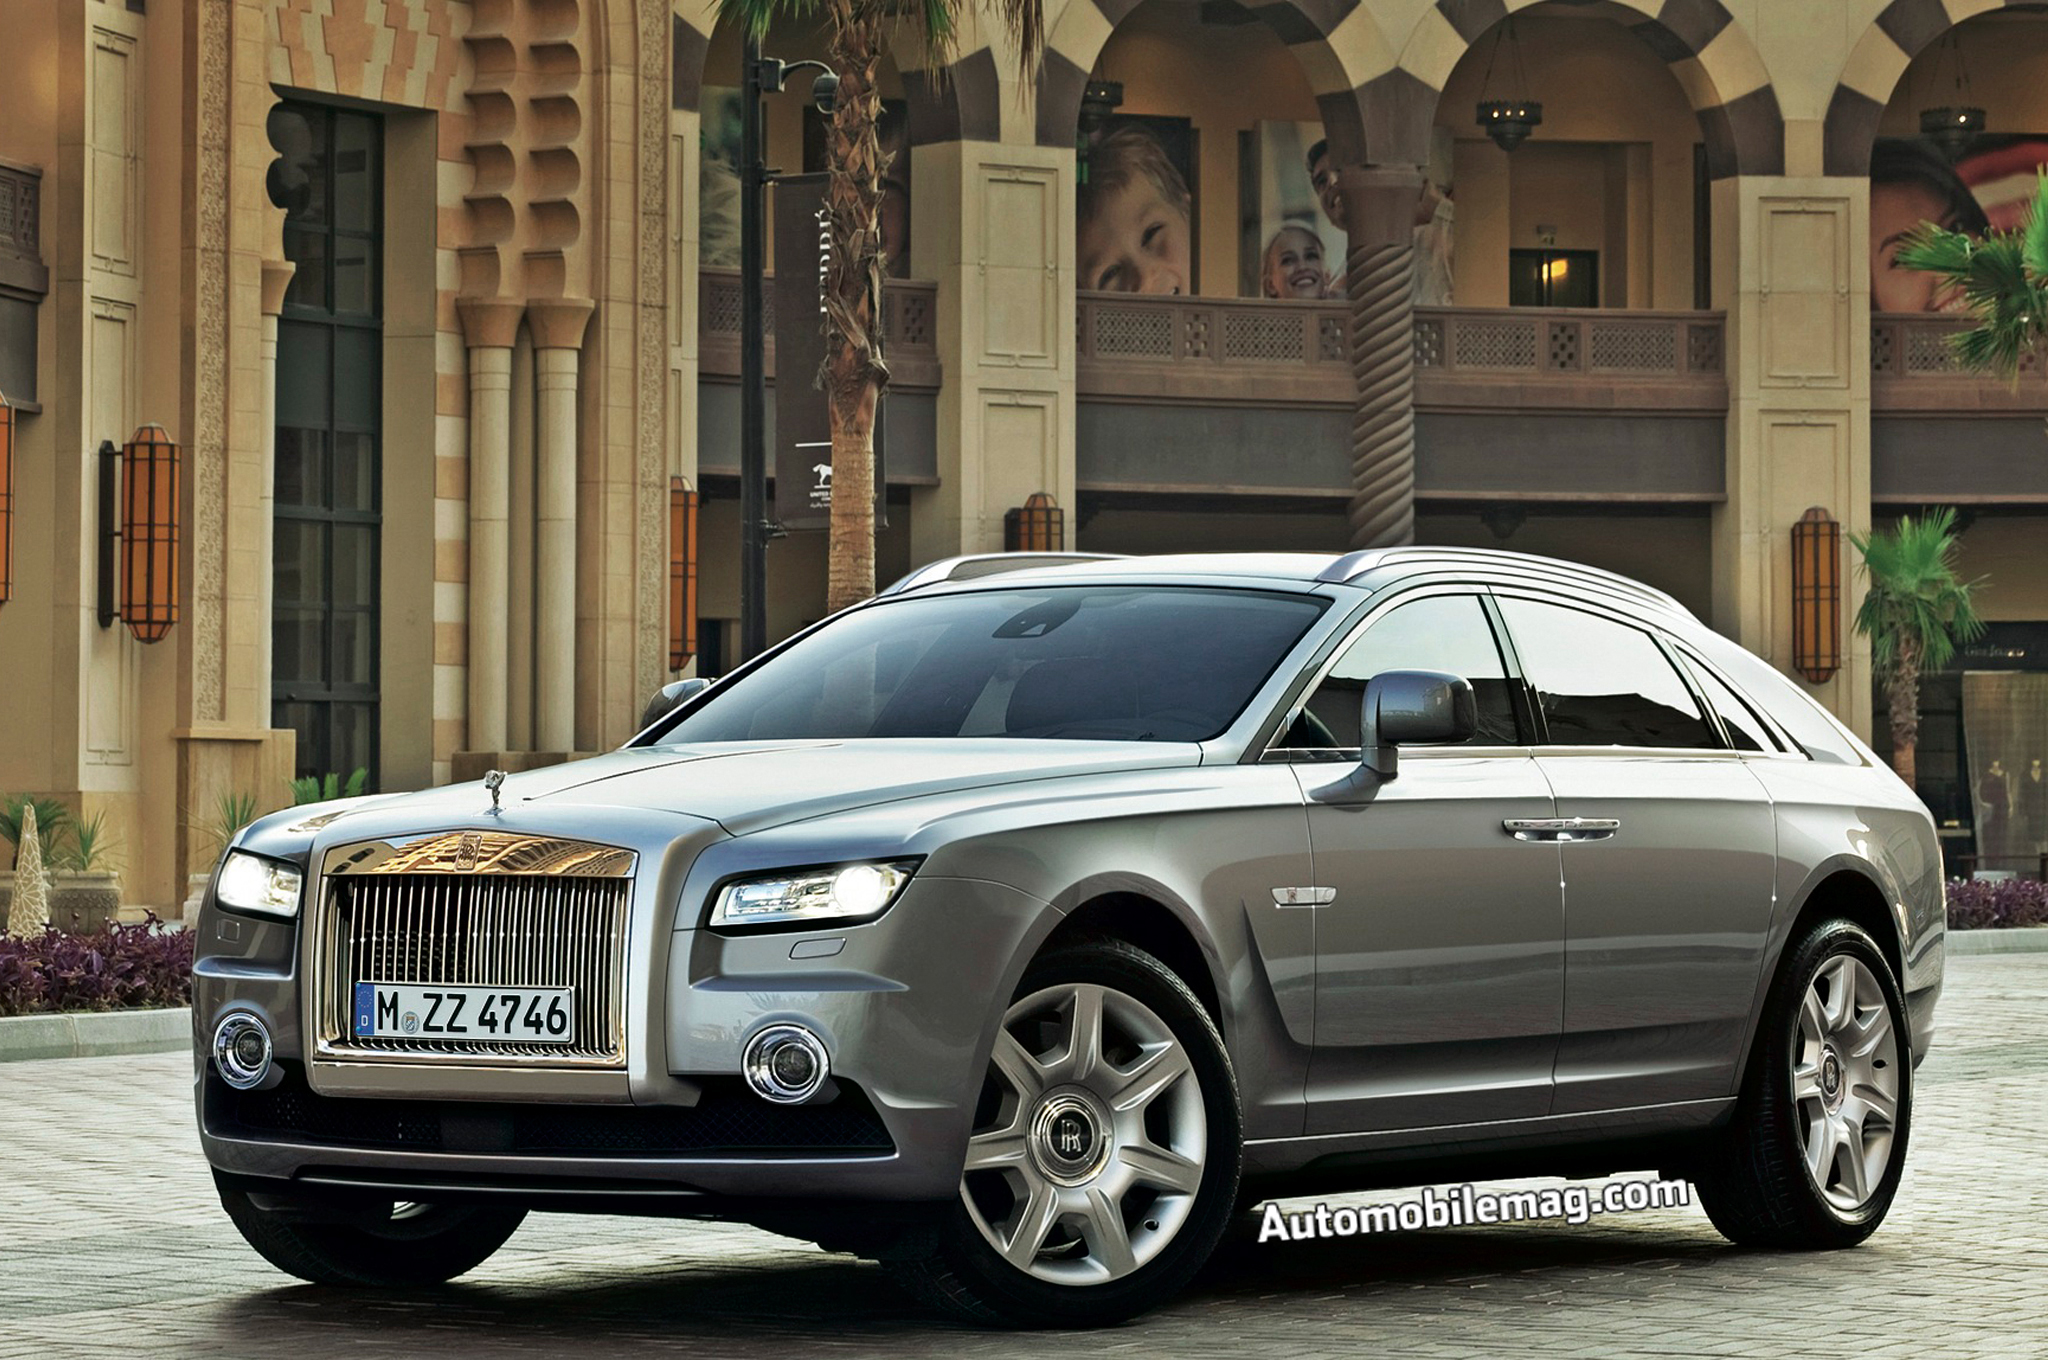 2018-Rolls-Royce-Pullman-front-three-quarter-rendering